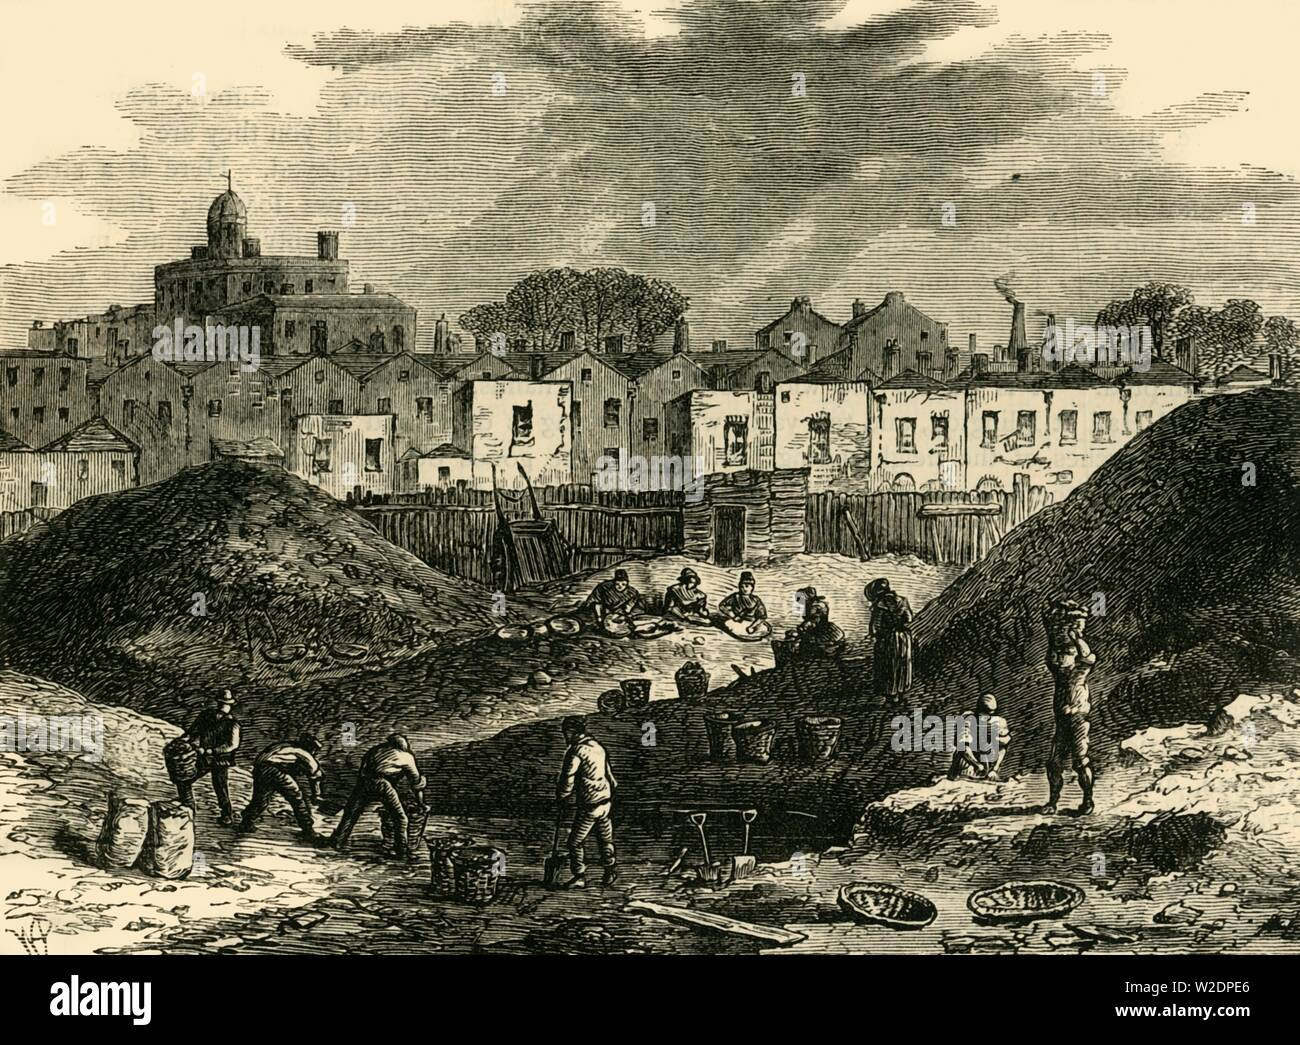 """'The Dust-Heaps, Somers Town, in 1836', (c1876). Somers Town became a dense shanty town, surrounded on several sides by brickfields and dust heaps. From """"Old and New London: A Narrative of Its History, Its People, and Its Places. The Western and Northern Studies"""", by Edward Walford. [Cassell, Petter, Galpin & Co., London, Paris & New York] - Stock Image"""